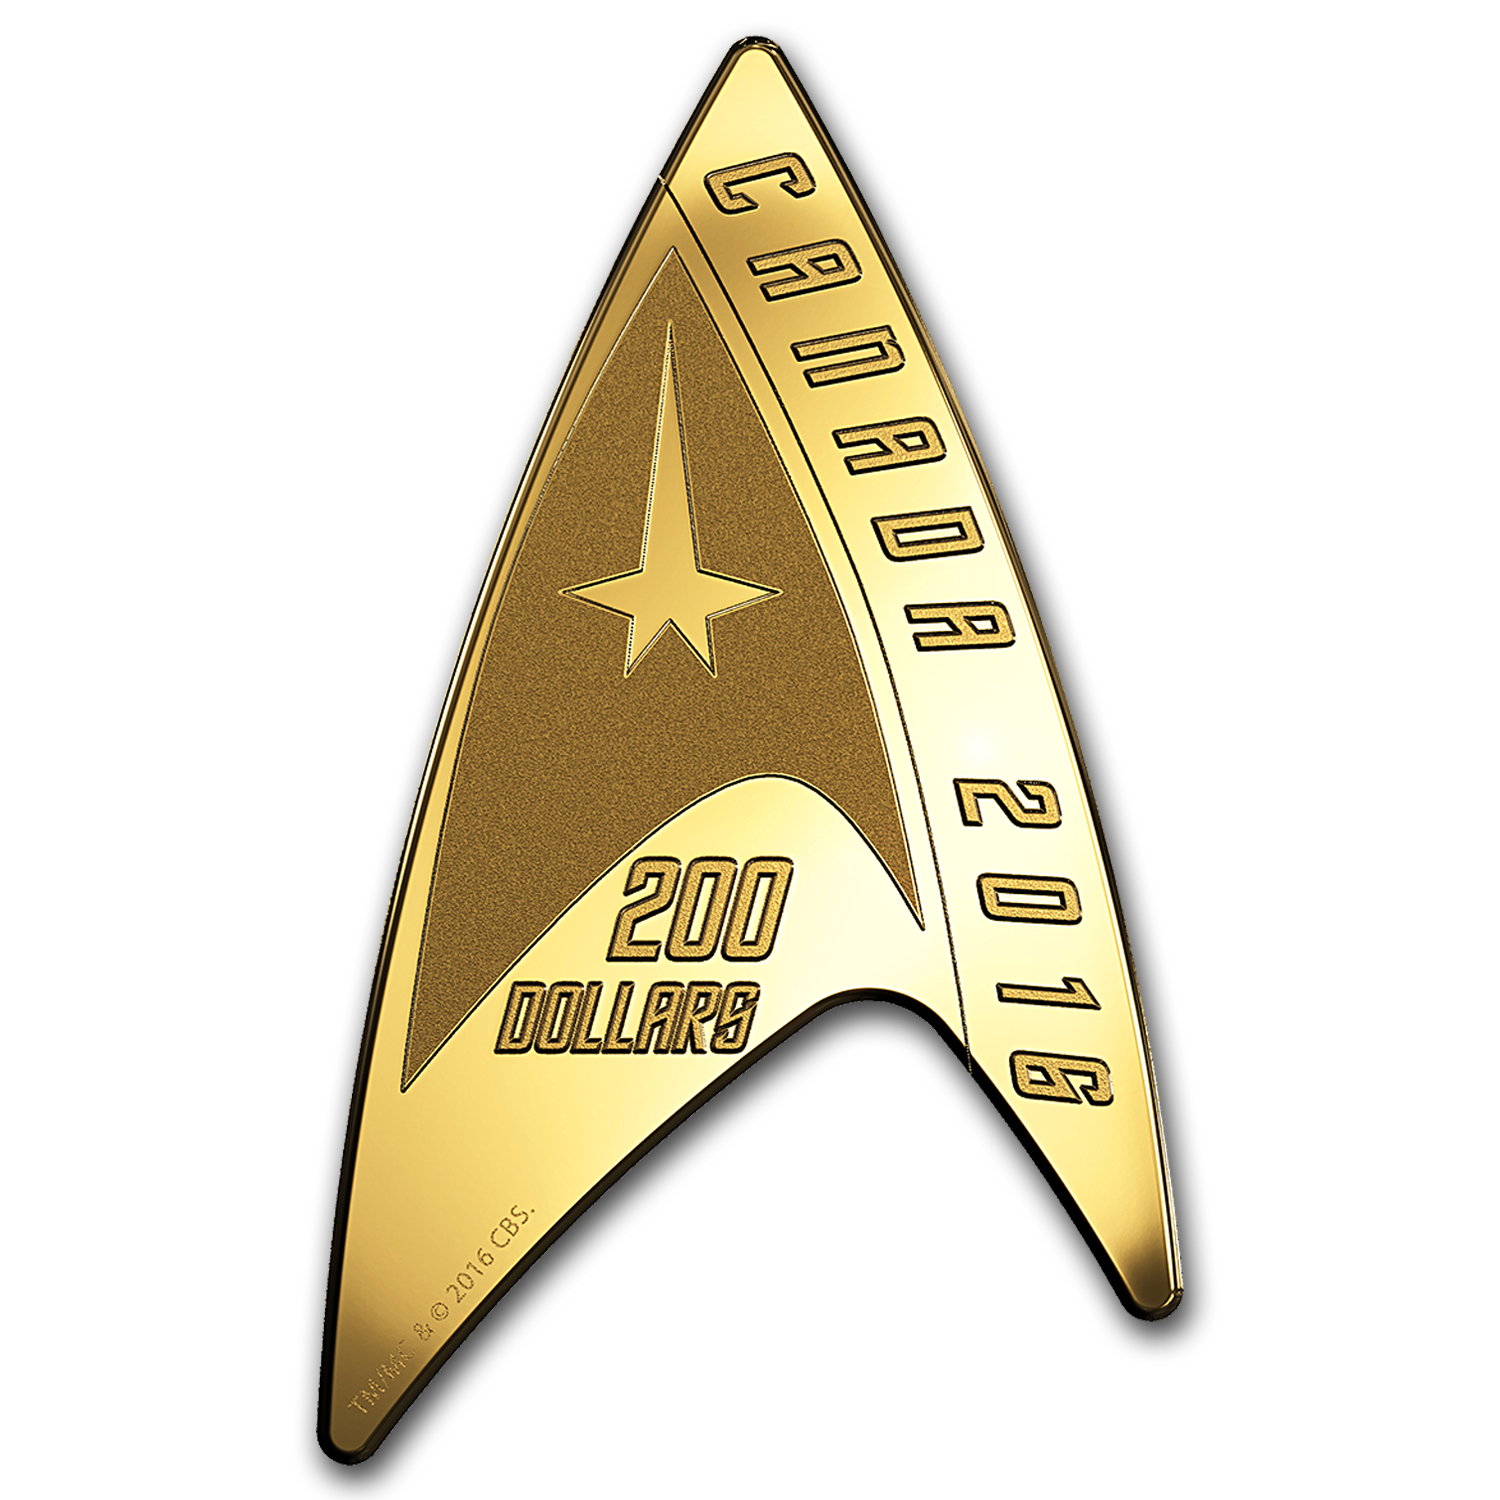 2016 Canada 1/2 oz Proof Gold $200 Star Trek Delta Shaped Coin